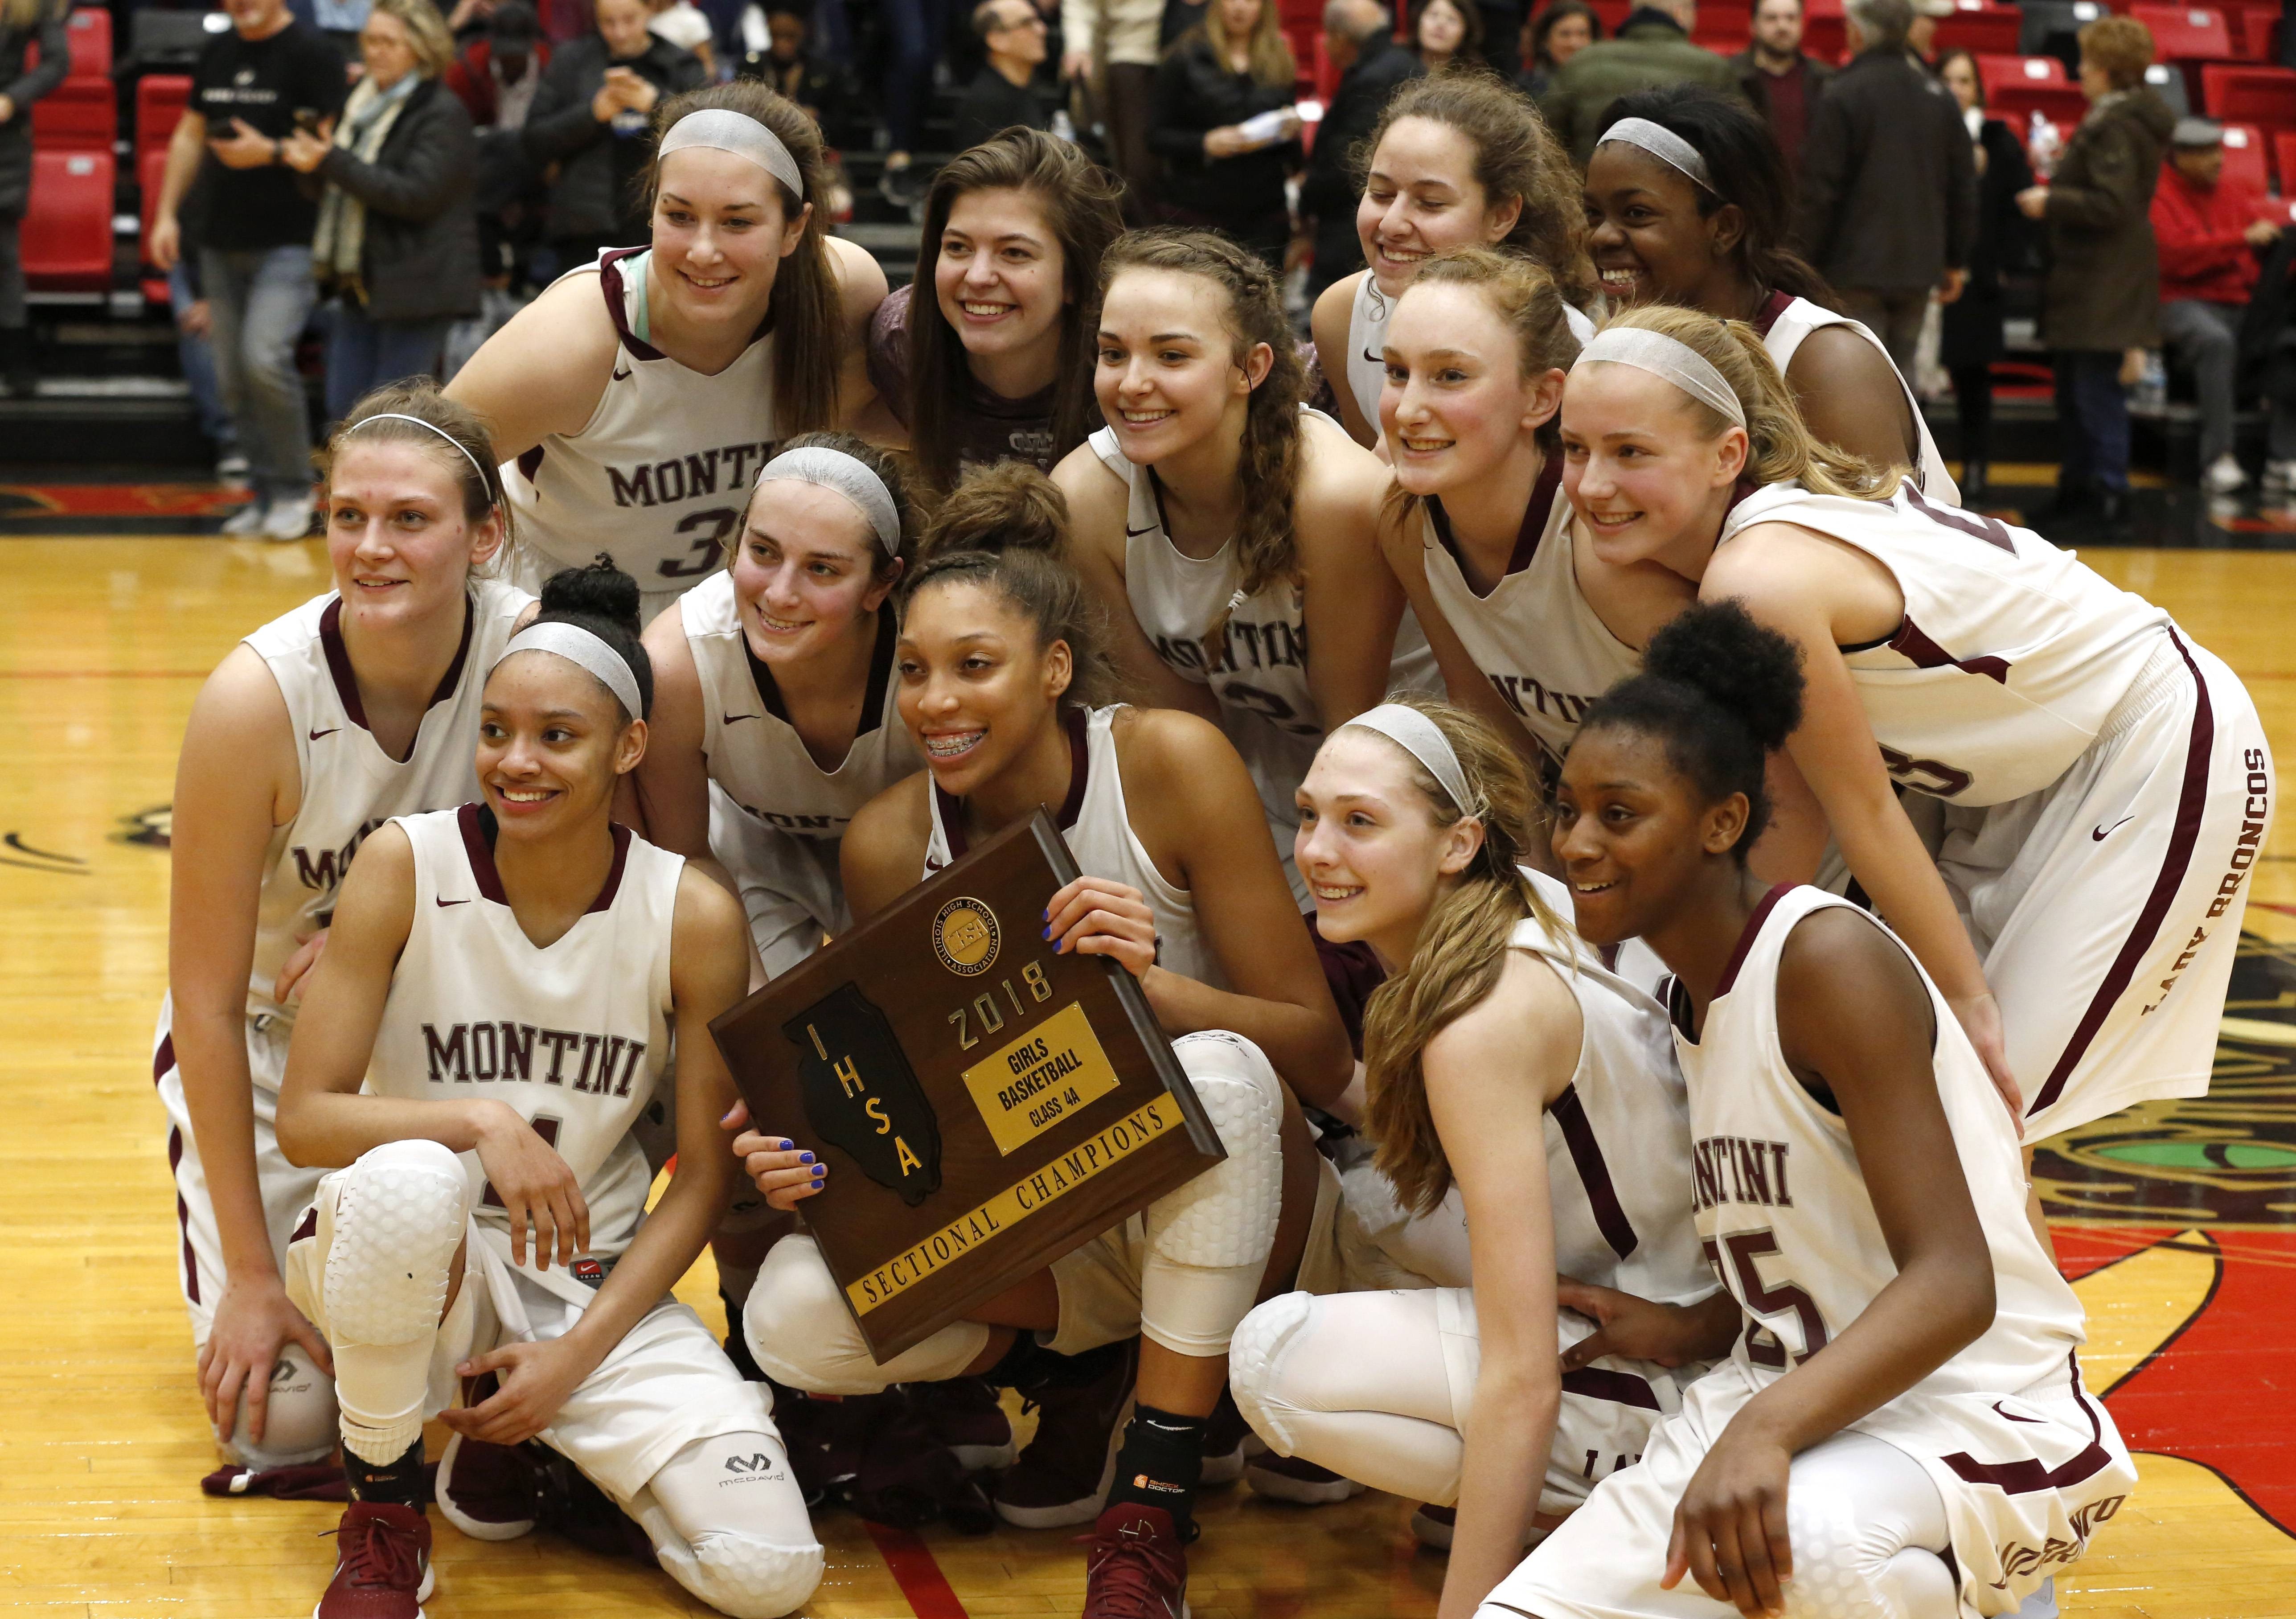 Montini Catholic players celebrate a 54-31 win over Benet Academy to win the Class 4A Proviso West girls basketball sectional championship.